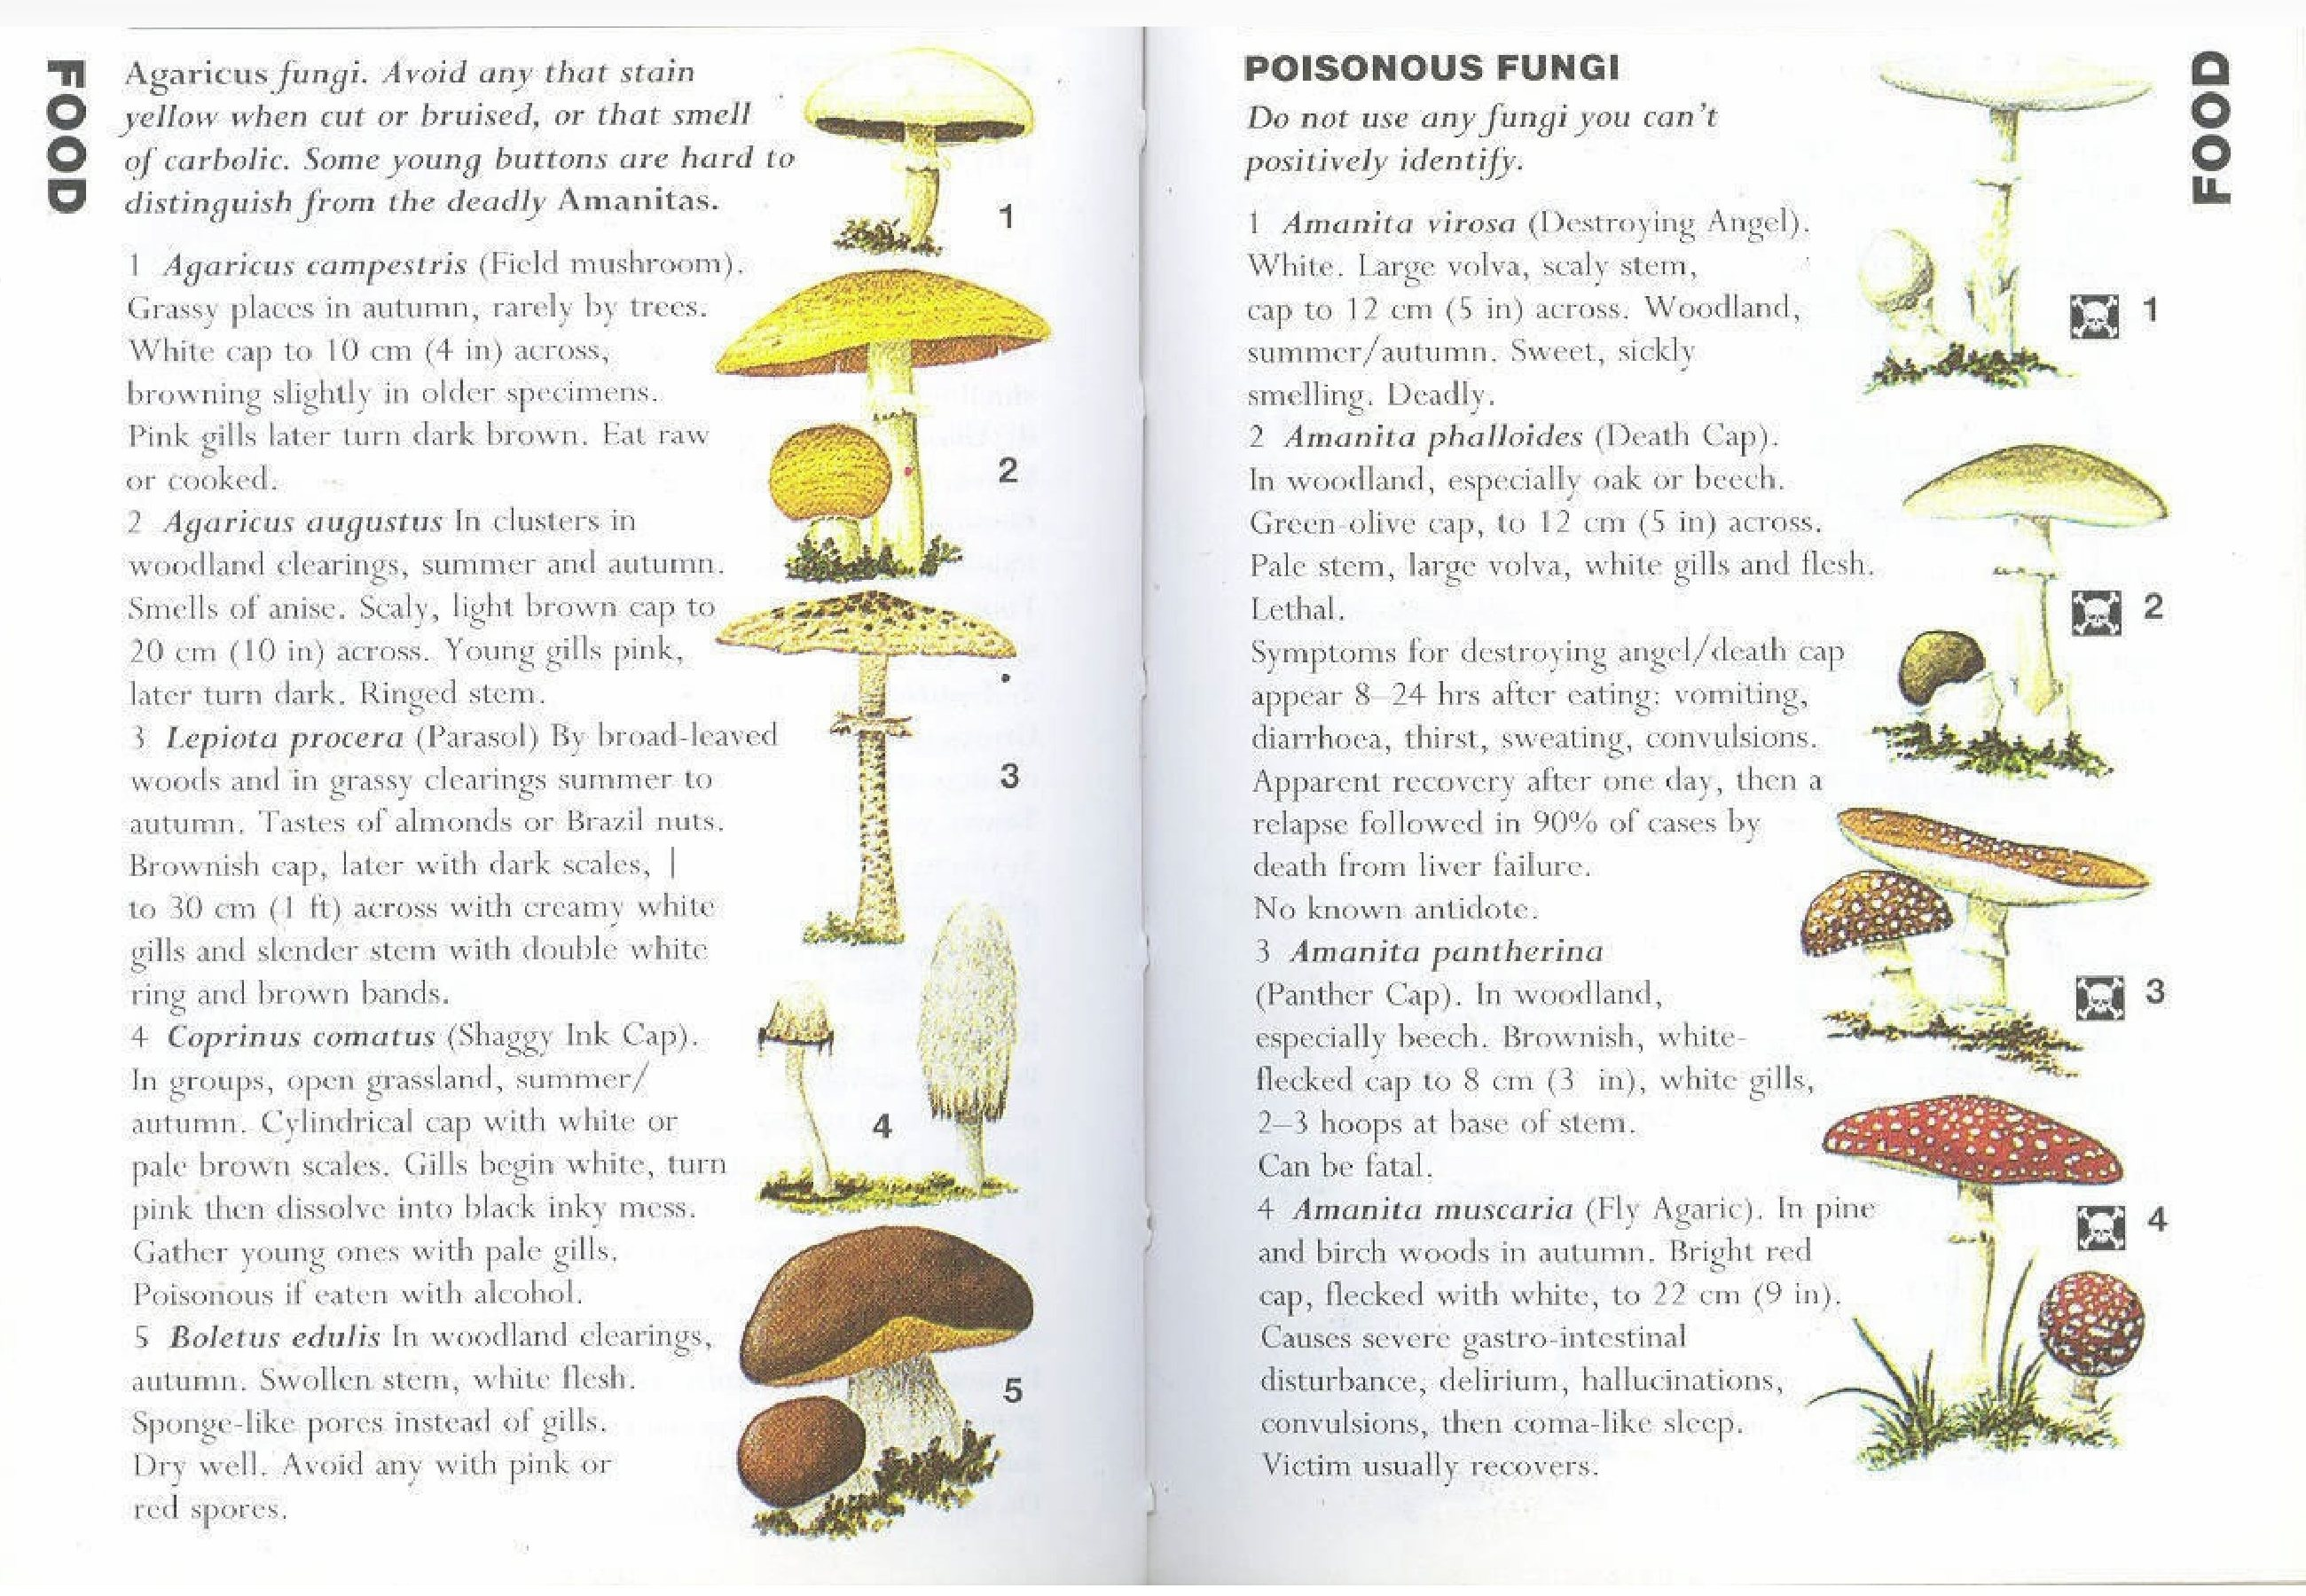 Agaricus fungi: Avoid any that stain yellow when cut or bruised, or that smell of carbolic. Some young buttons are hard to distinguish from the deadly Amanitas. Dont Use any […]